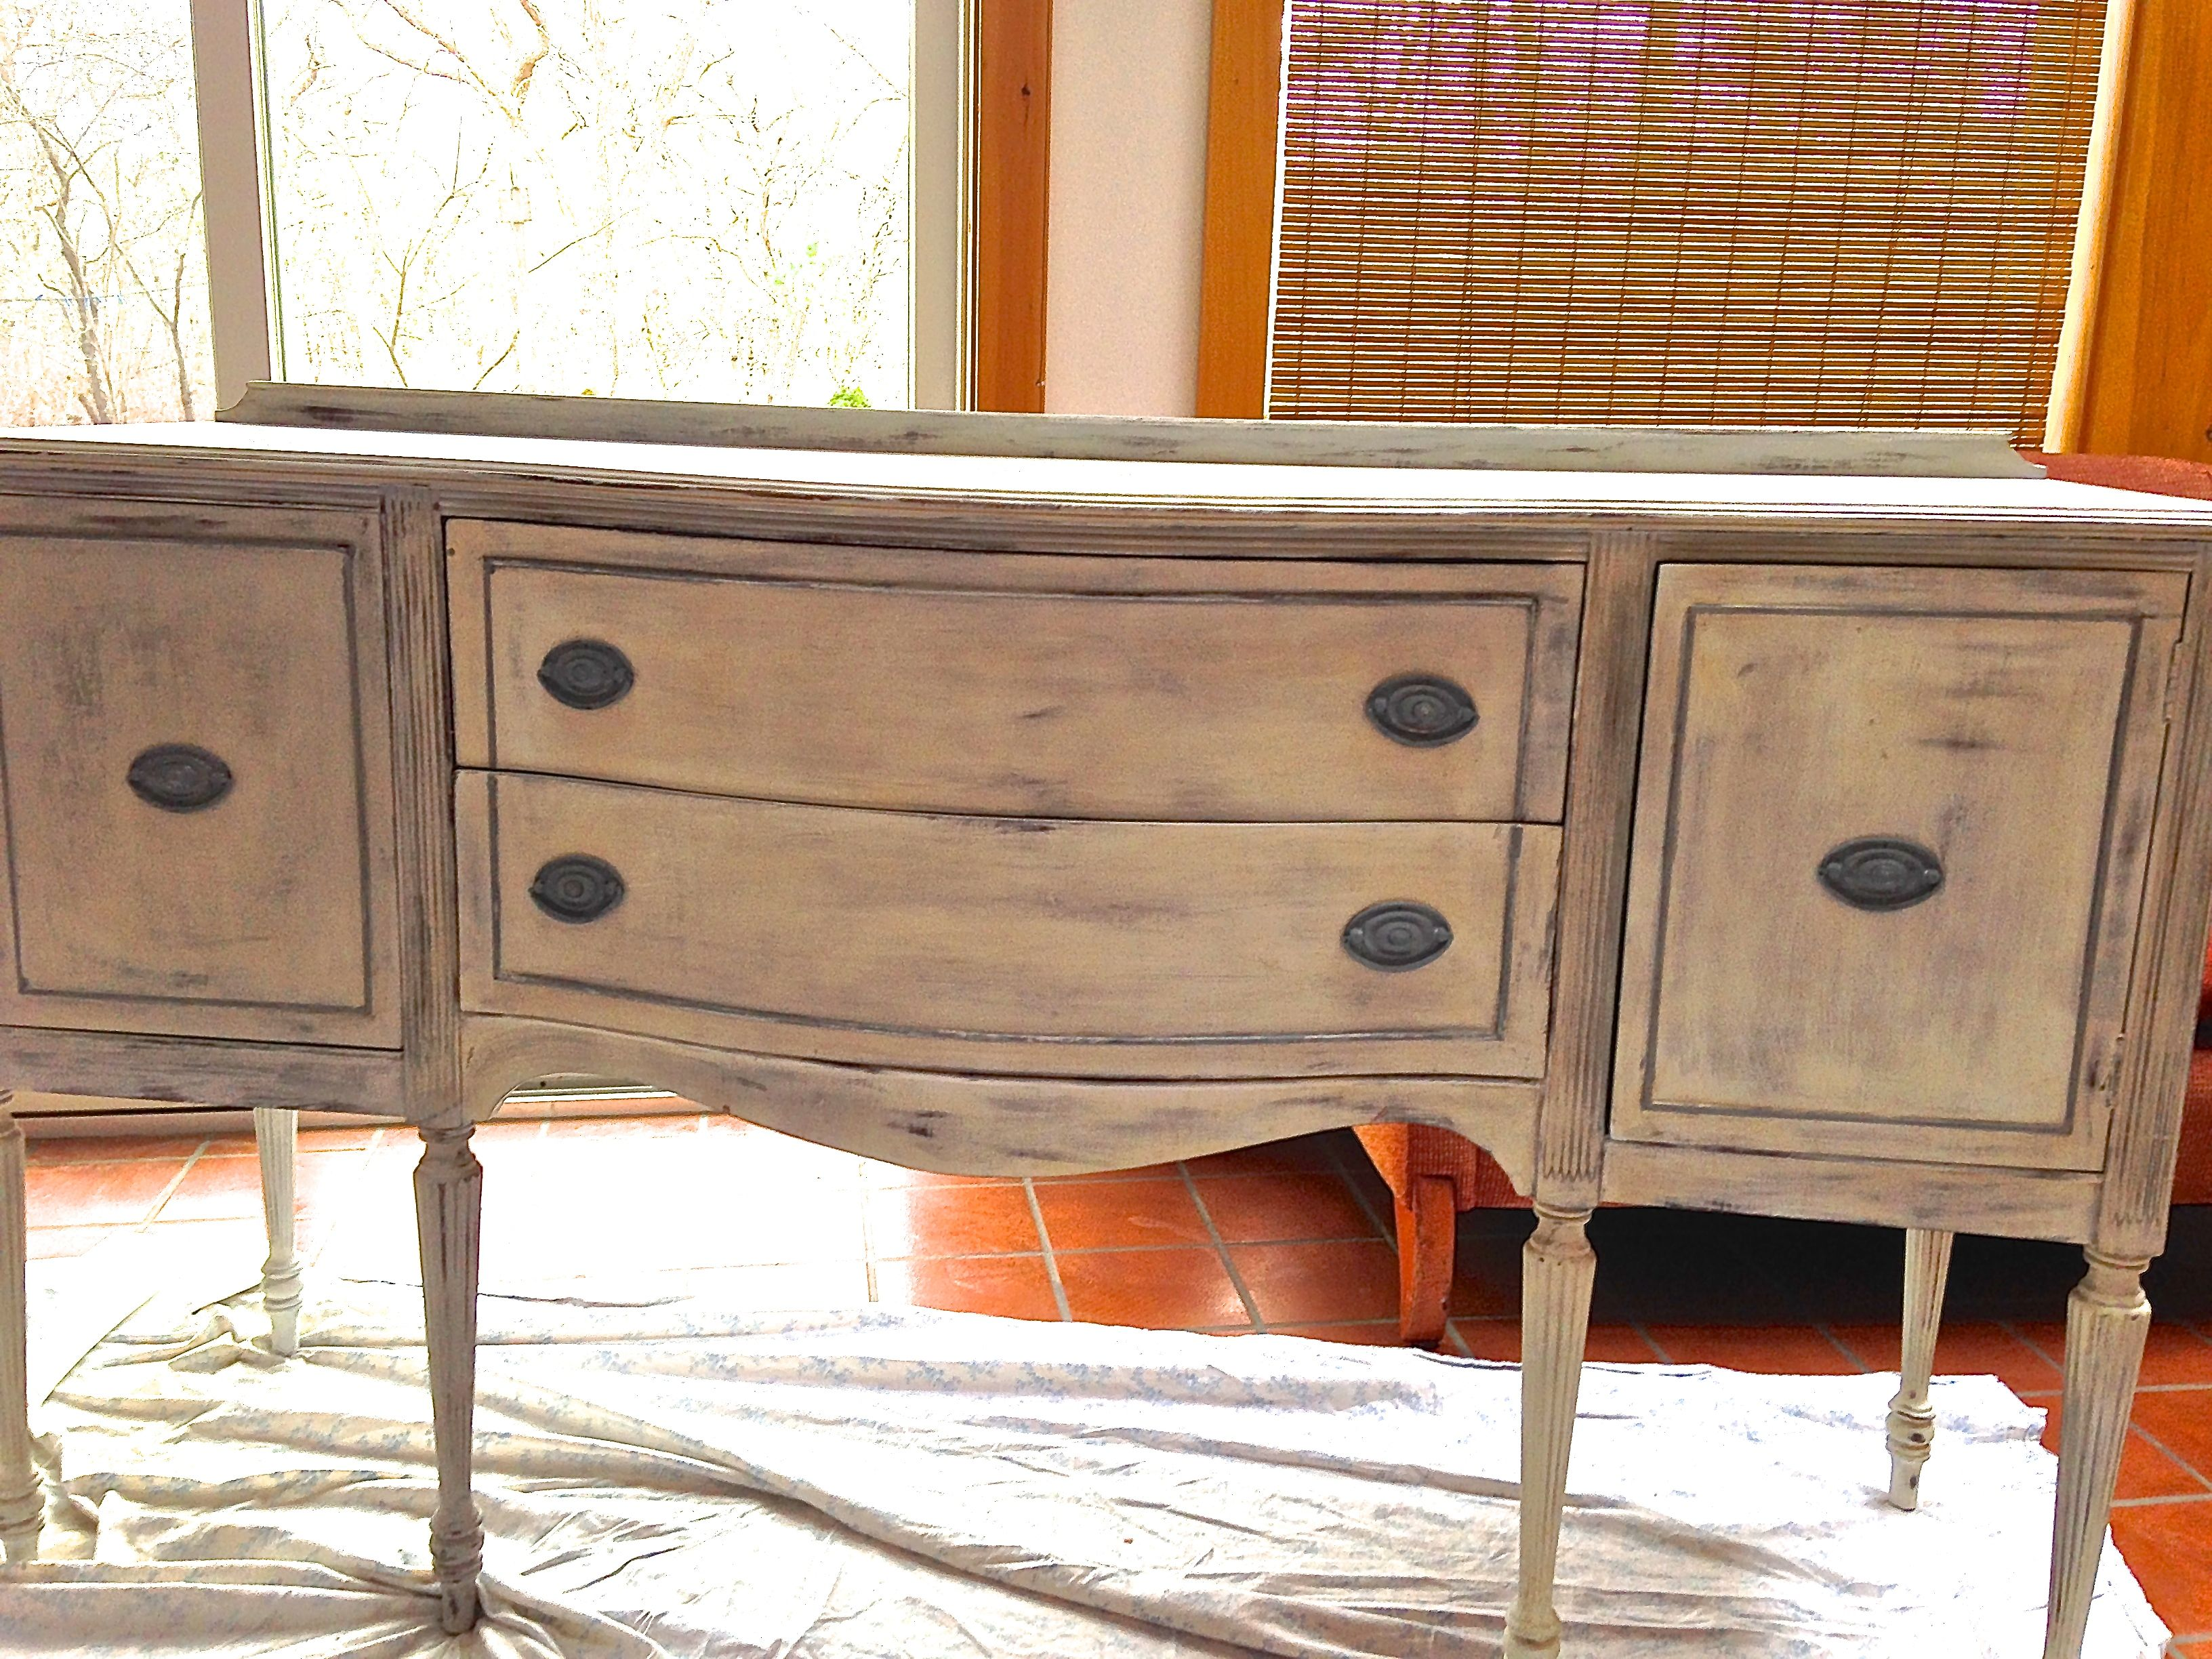 side board refinished in Paris Gray and Old White.  Dark & clear wax.